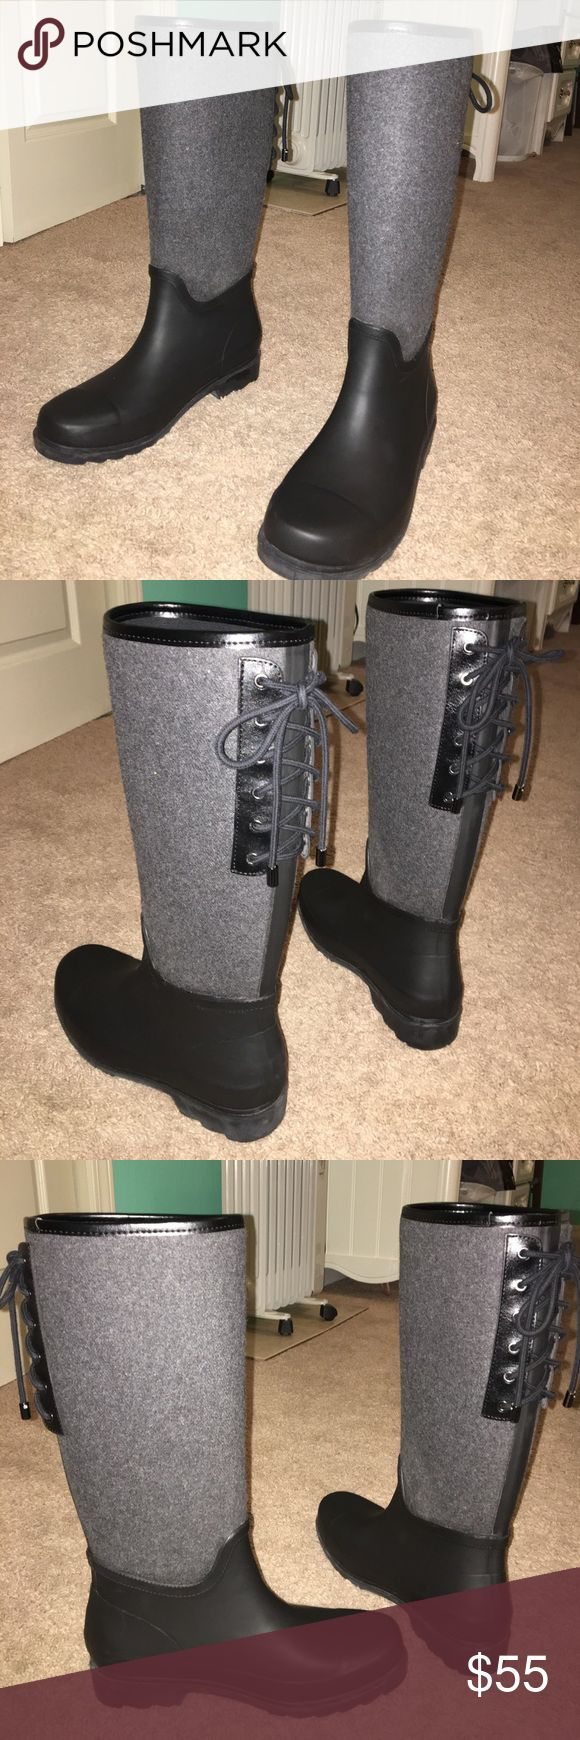 Women's rain boots Black matte rubber with a wool, gray leg and black tie-up in the back!! Only worn 3 times. Very comfortable. Will take reasonable offers Nine West Shoes Winter & Rain Boots